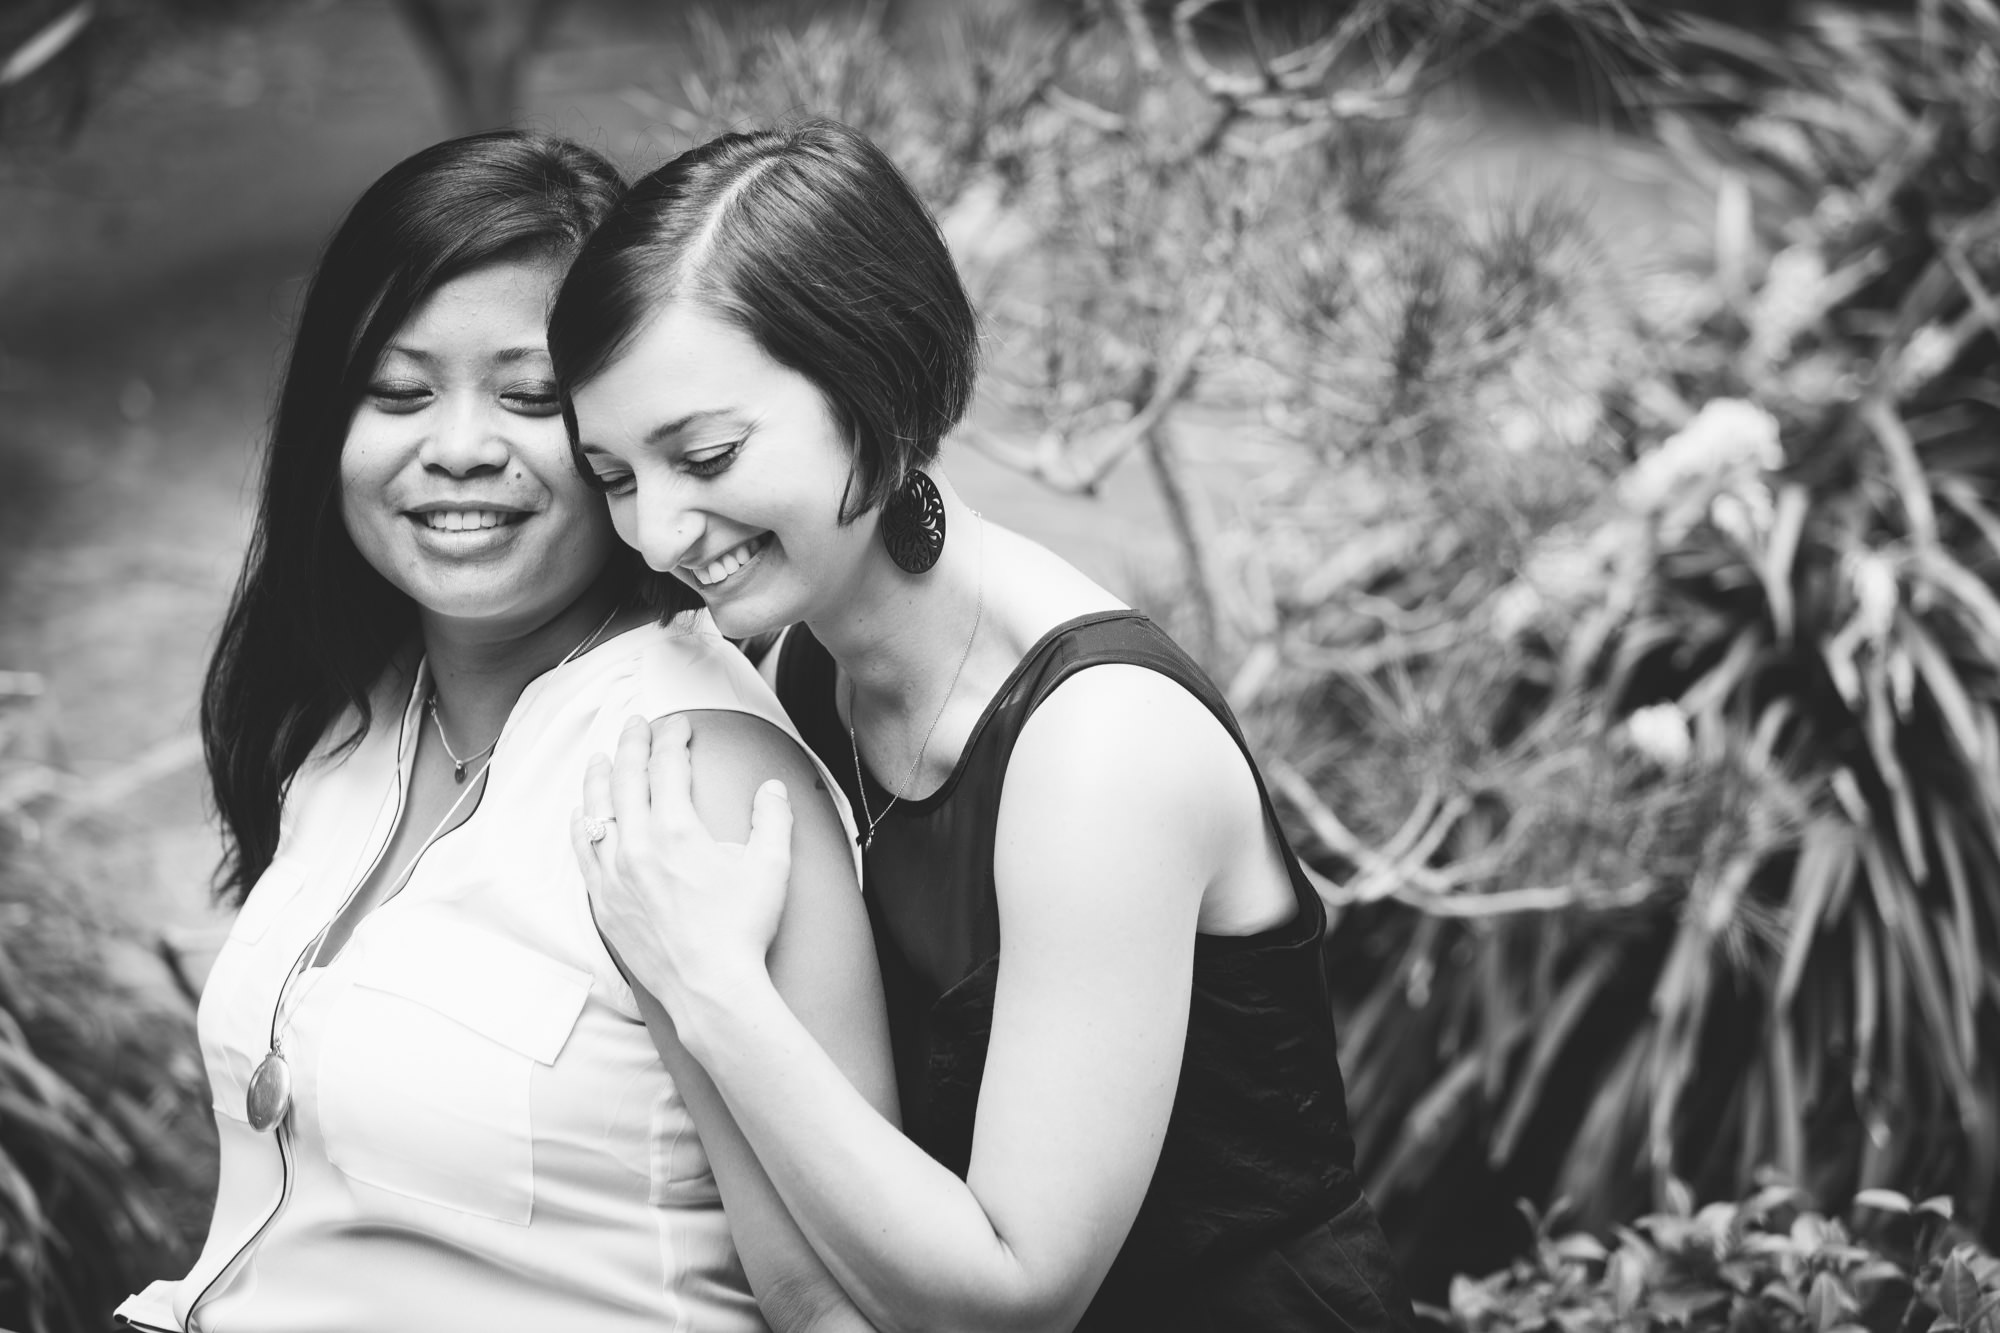 Dina_&_Stacy_Engagement_Photography_The_Light_&_Glass-014.jpg